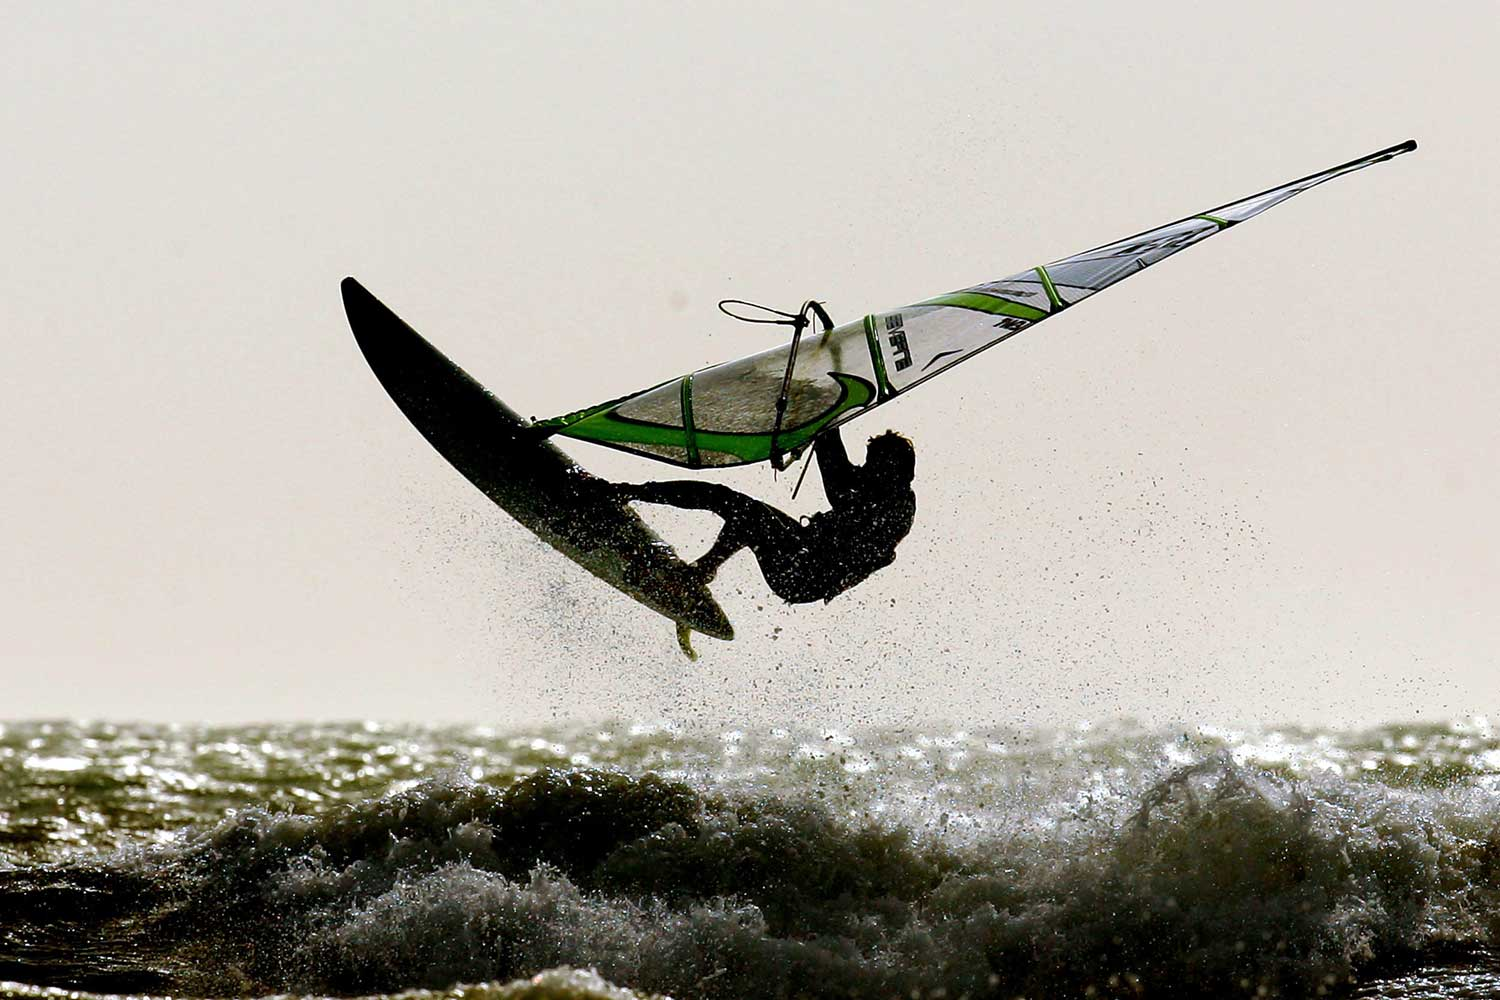 A competitor flies off a wave at the UK Finals Championships at the White Air Extreme Sports Festival in Sandown, Isle of Wright, England.